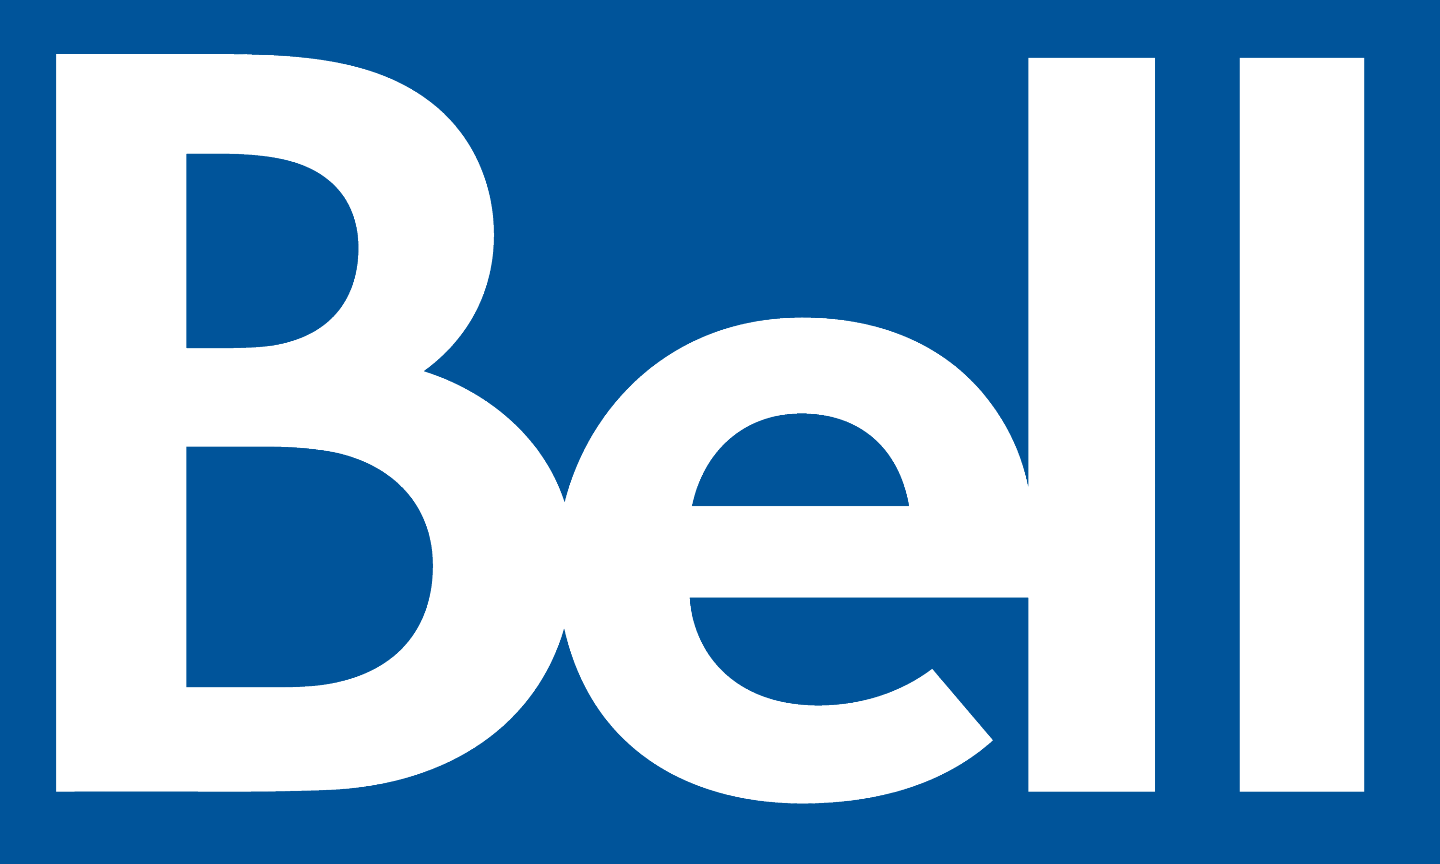 HOW TO GET APPROVED UP TO 15 PHONES IN STORE WITH BELL!